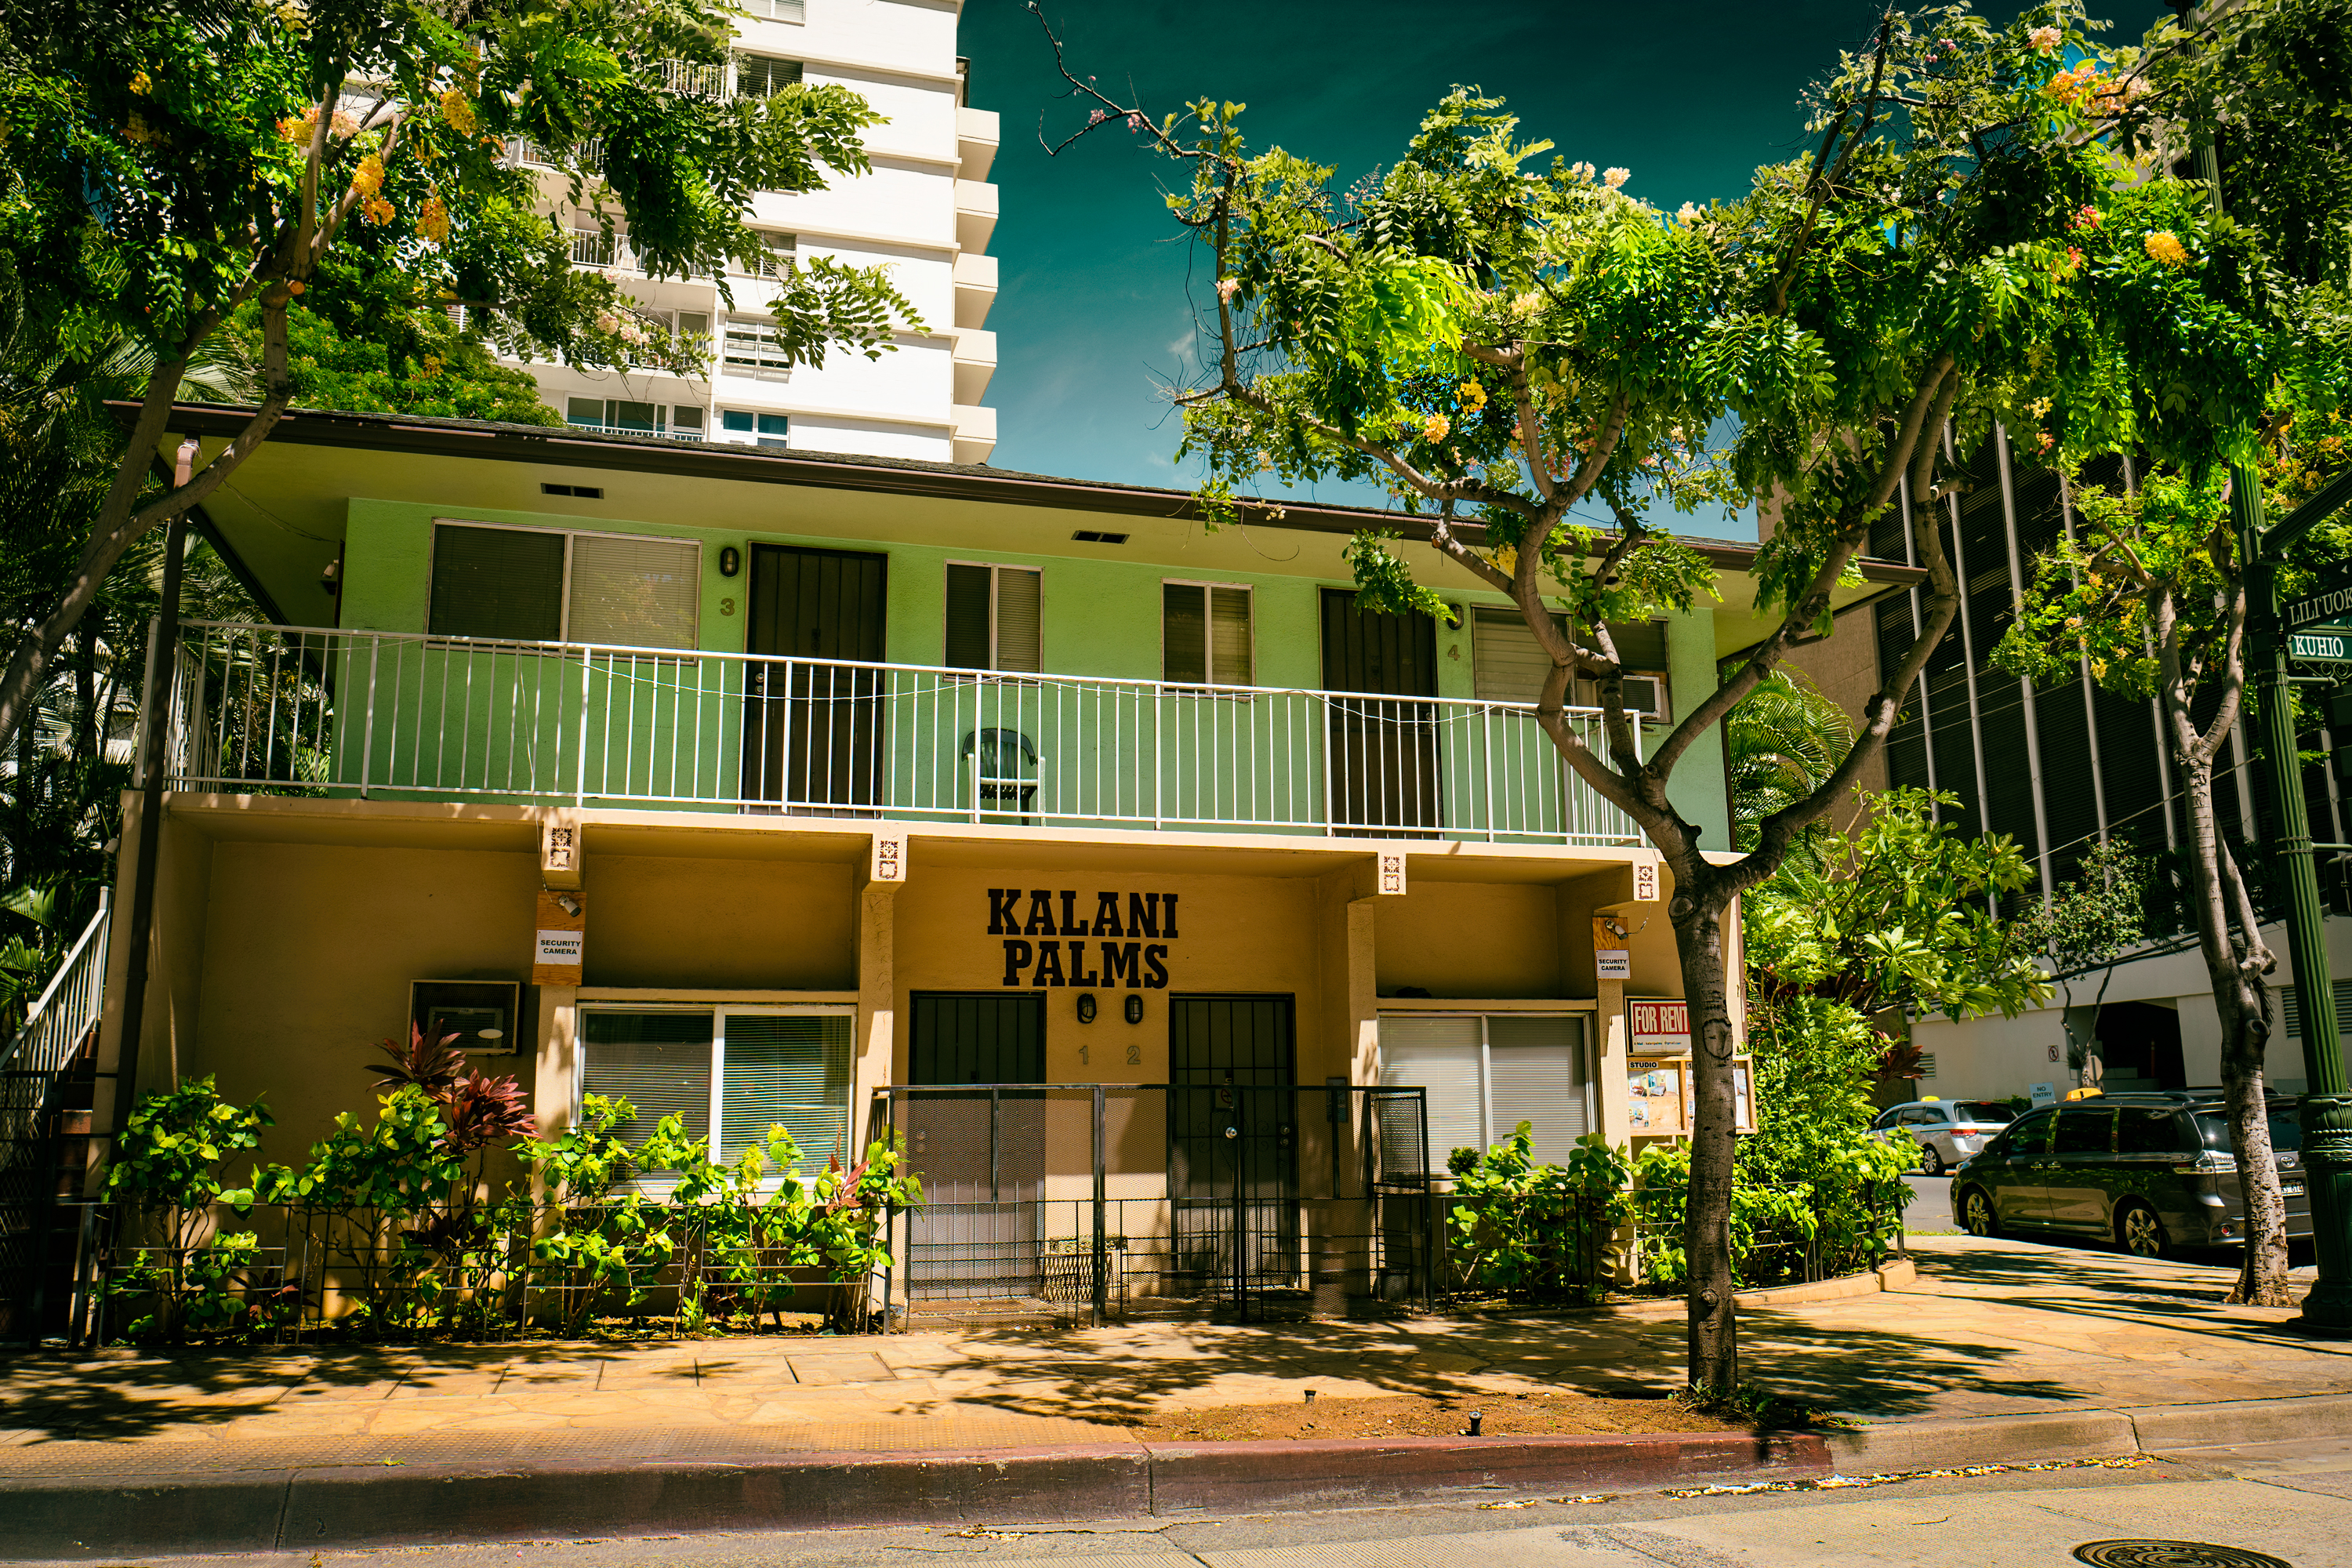 Apartment House in Kuhio